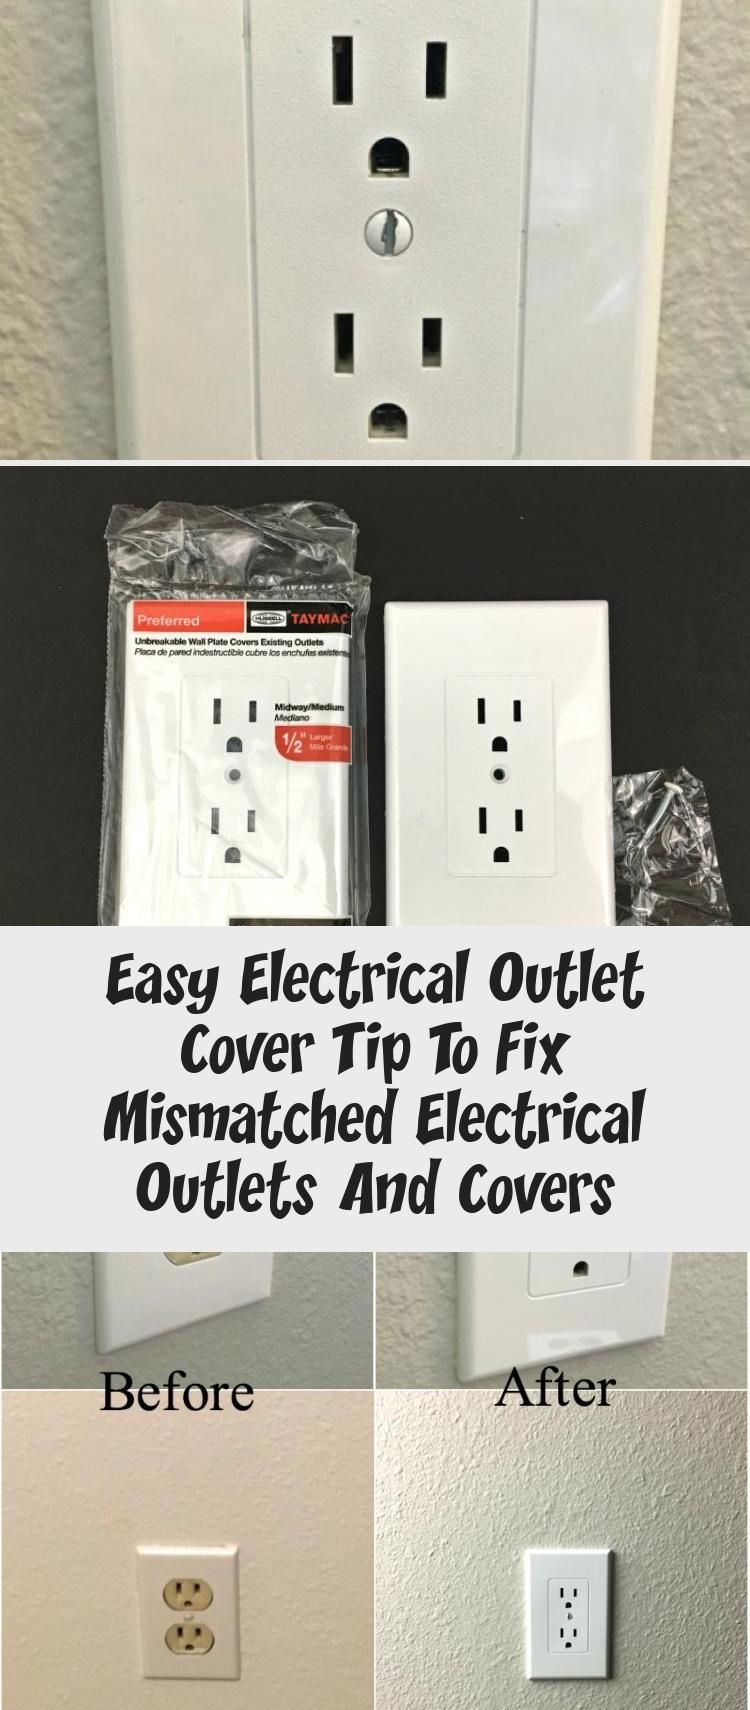 Easy Electrical Outlet Cover Tip To Fix Mismatched Electrical Outlets And Covers Electrical Outlet Covers Outlet Covers Electrical Outlets